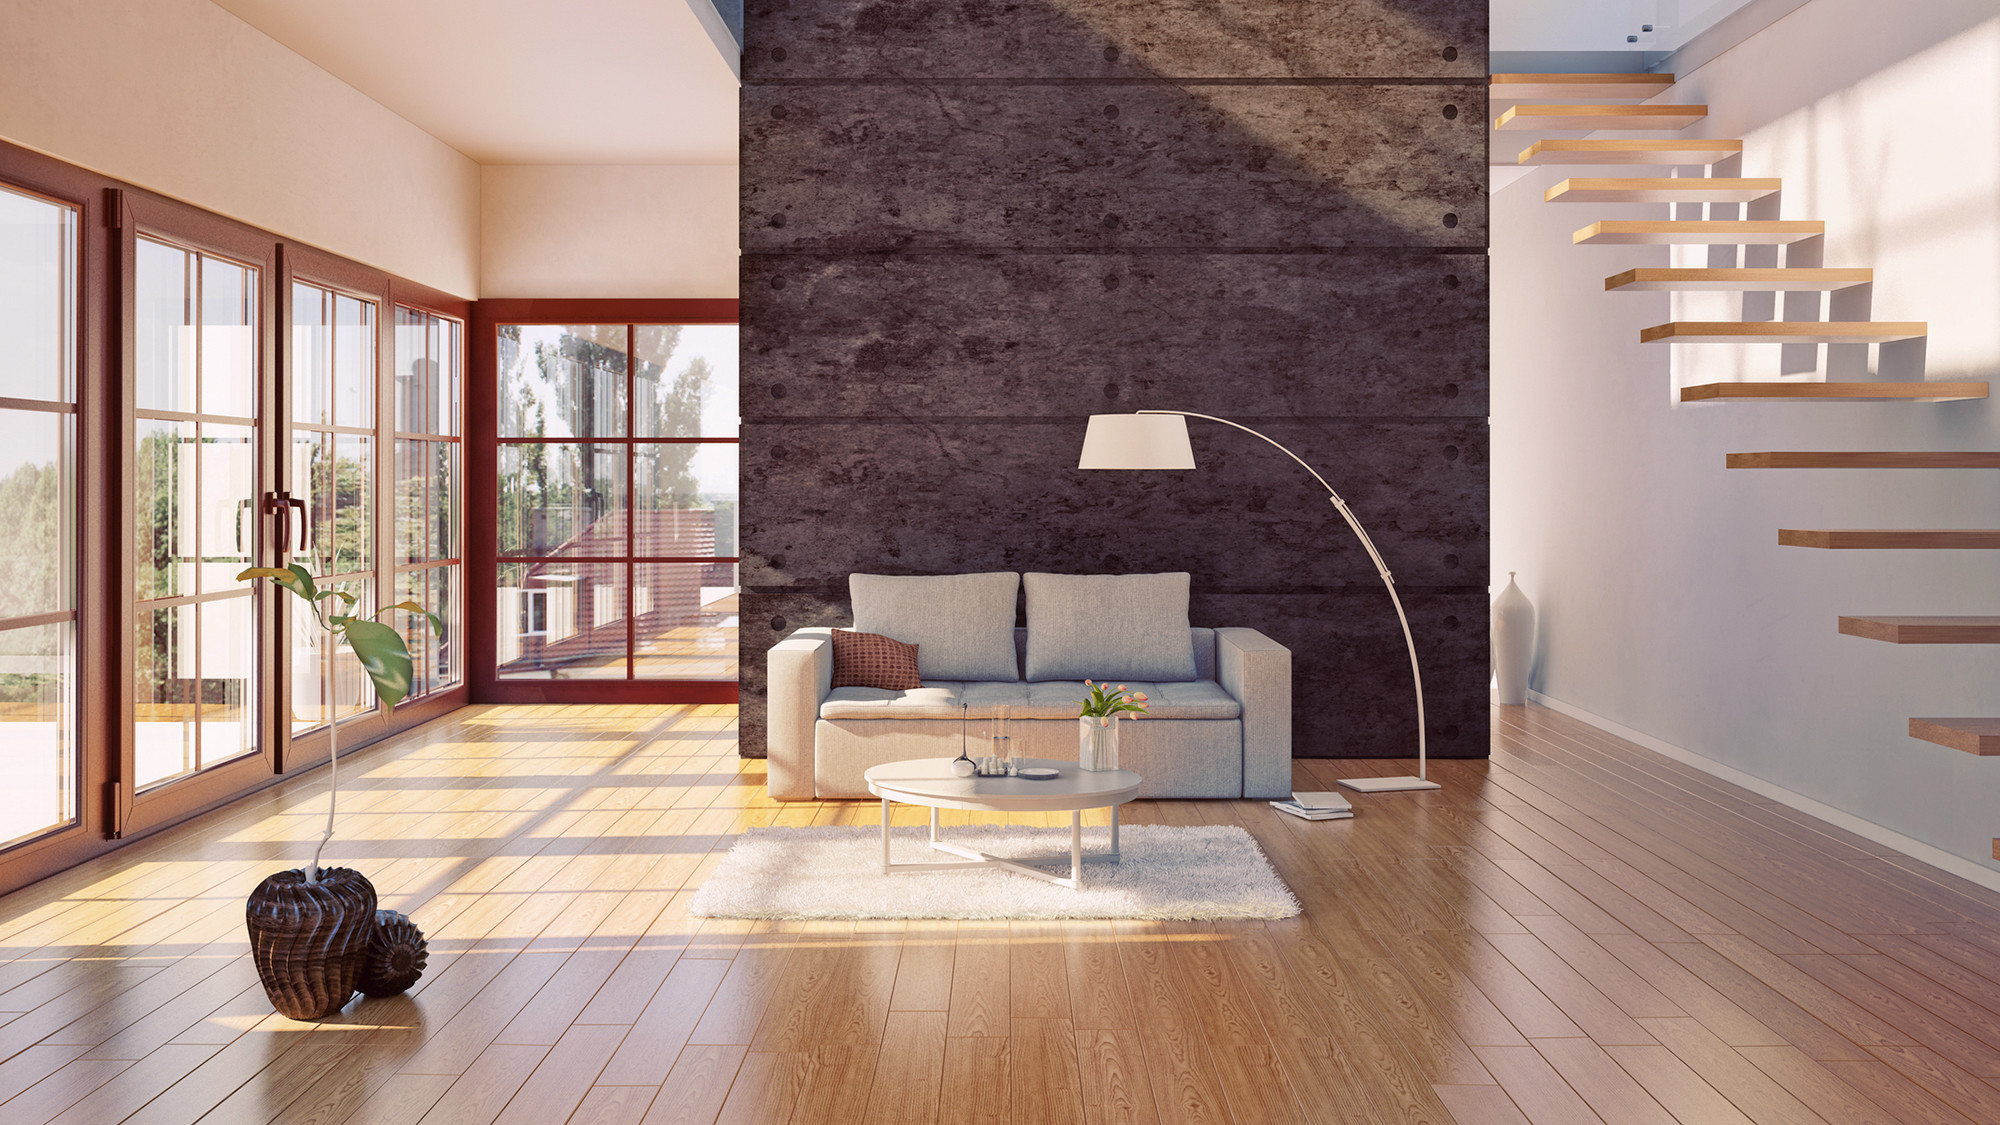 how much is the average cost to install hardwood floors of do hardwood floors provide the best return on investment realtor coma throughout hardwood floors investment